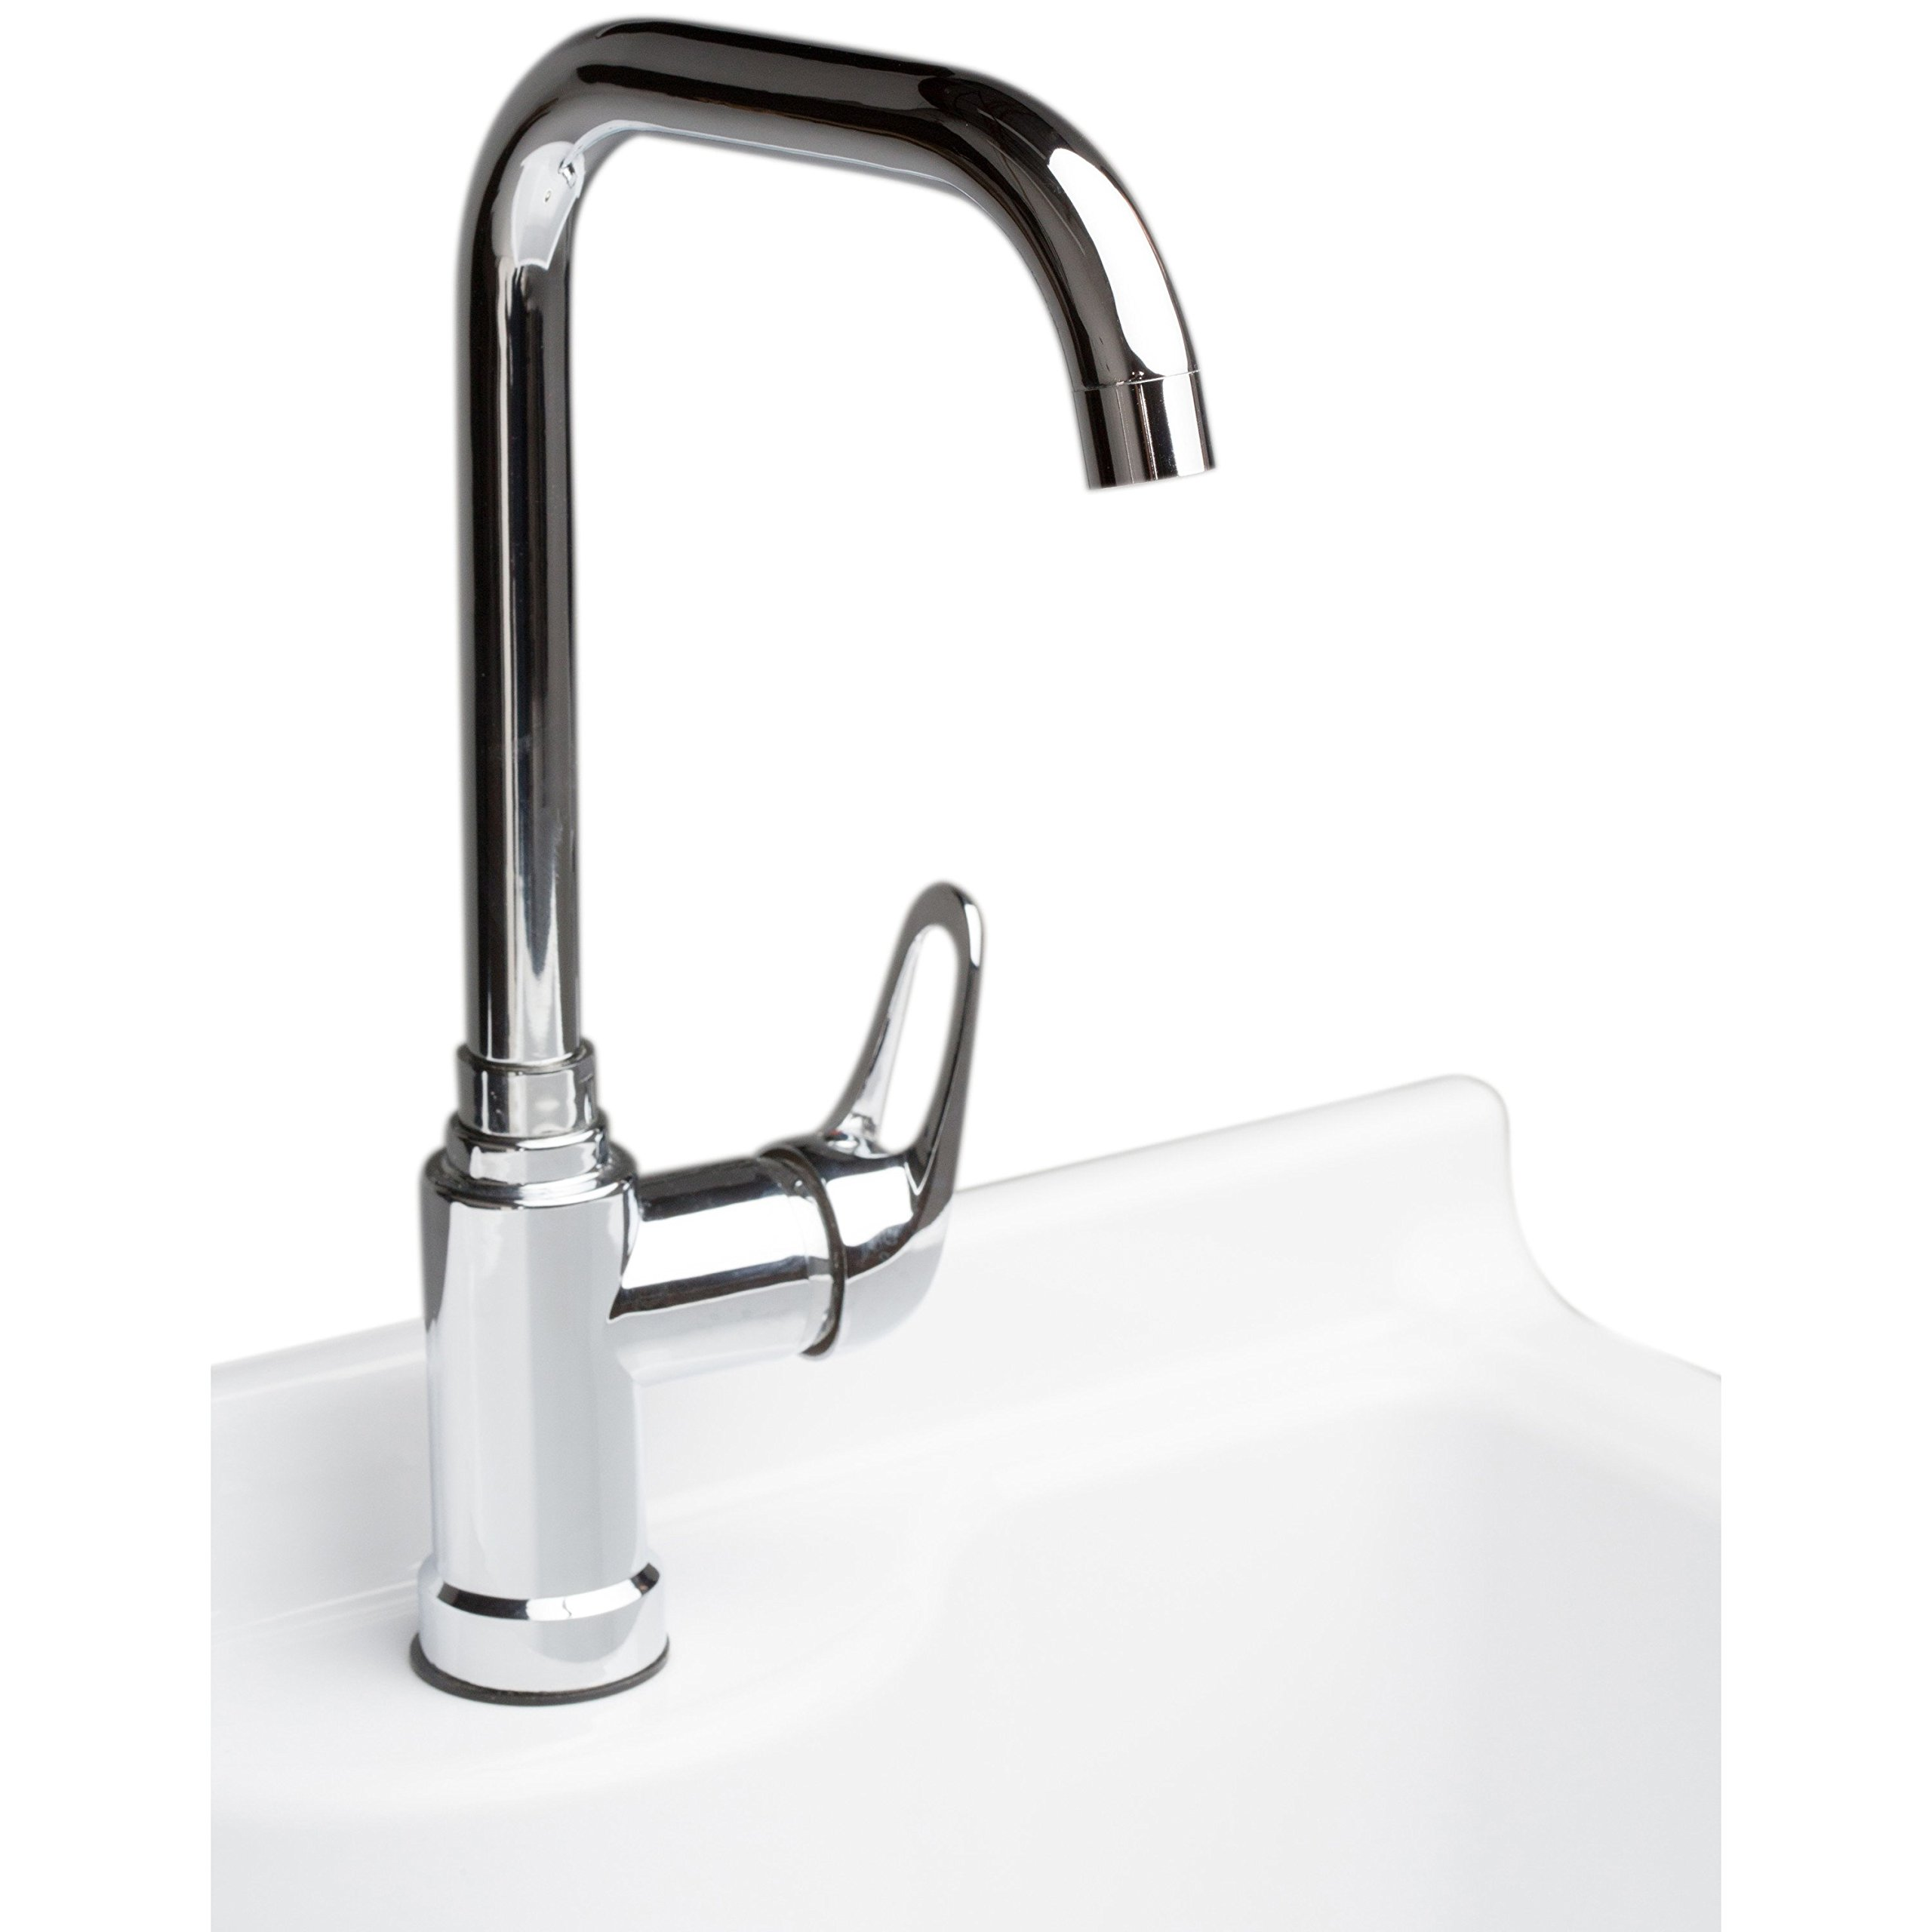 Simpli Home Murphy Laundry Cabinet with Faucet and ABS Sink, 24'', Pure White by Simpli Home (Image #4)